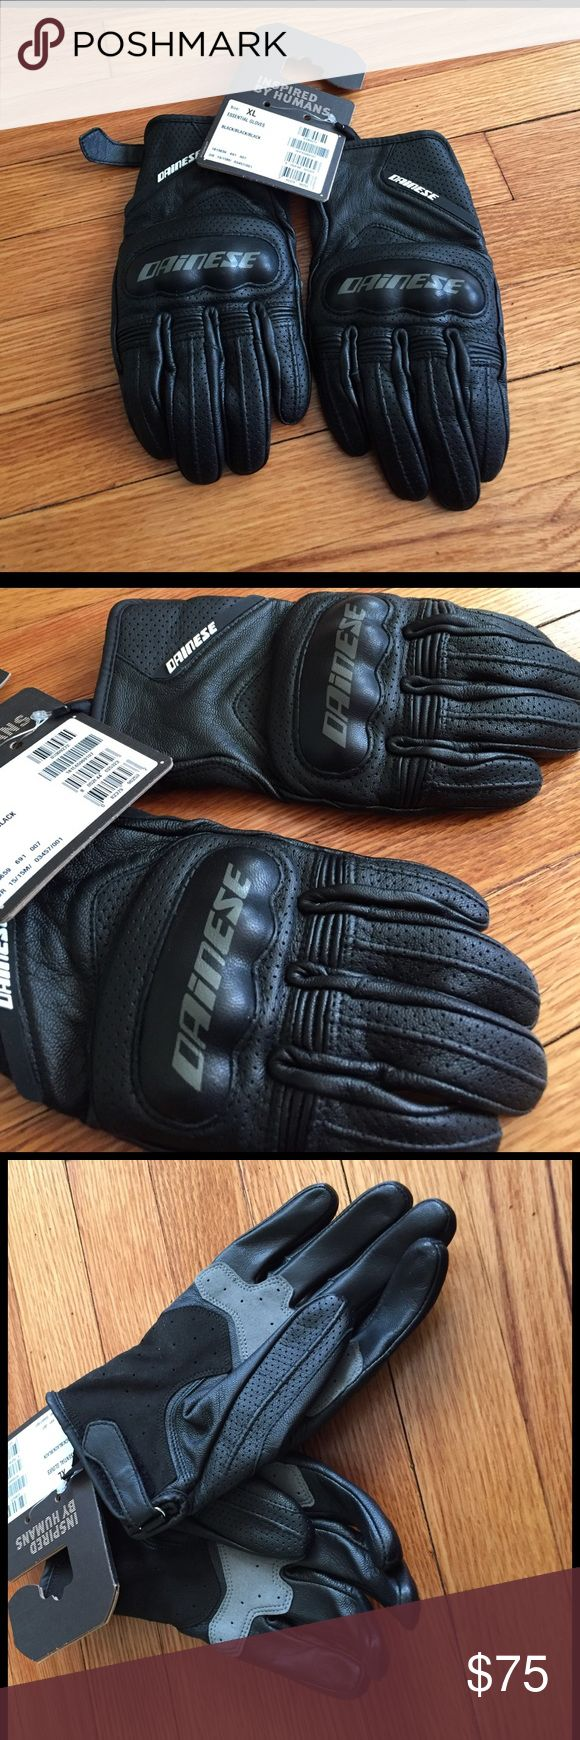 Vanson leather motorcycle gloves - Nwt Dainese Motorcycle Gloves Boutique